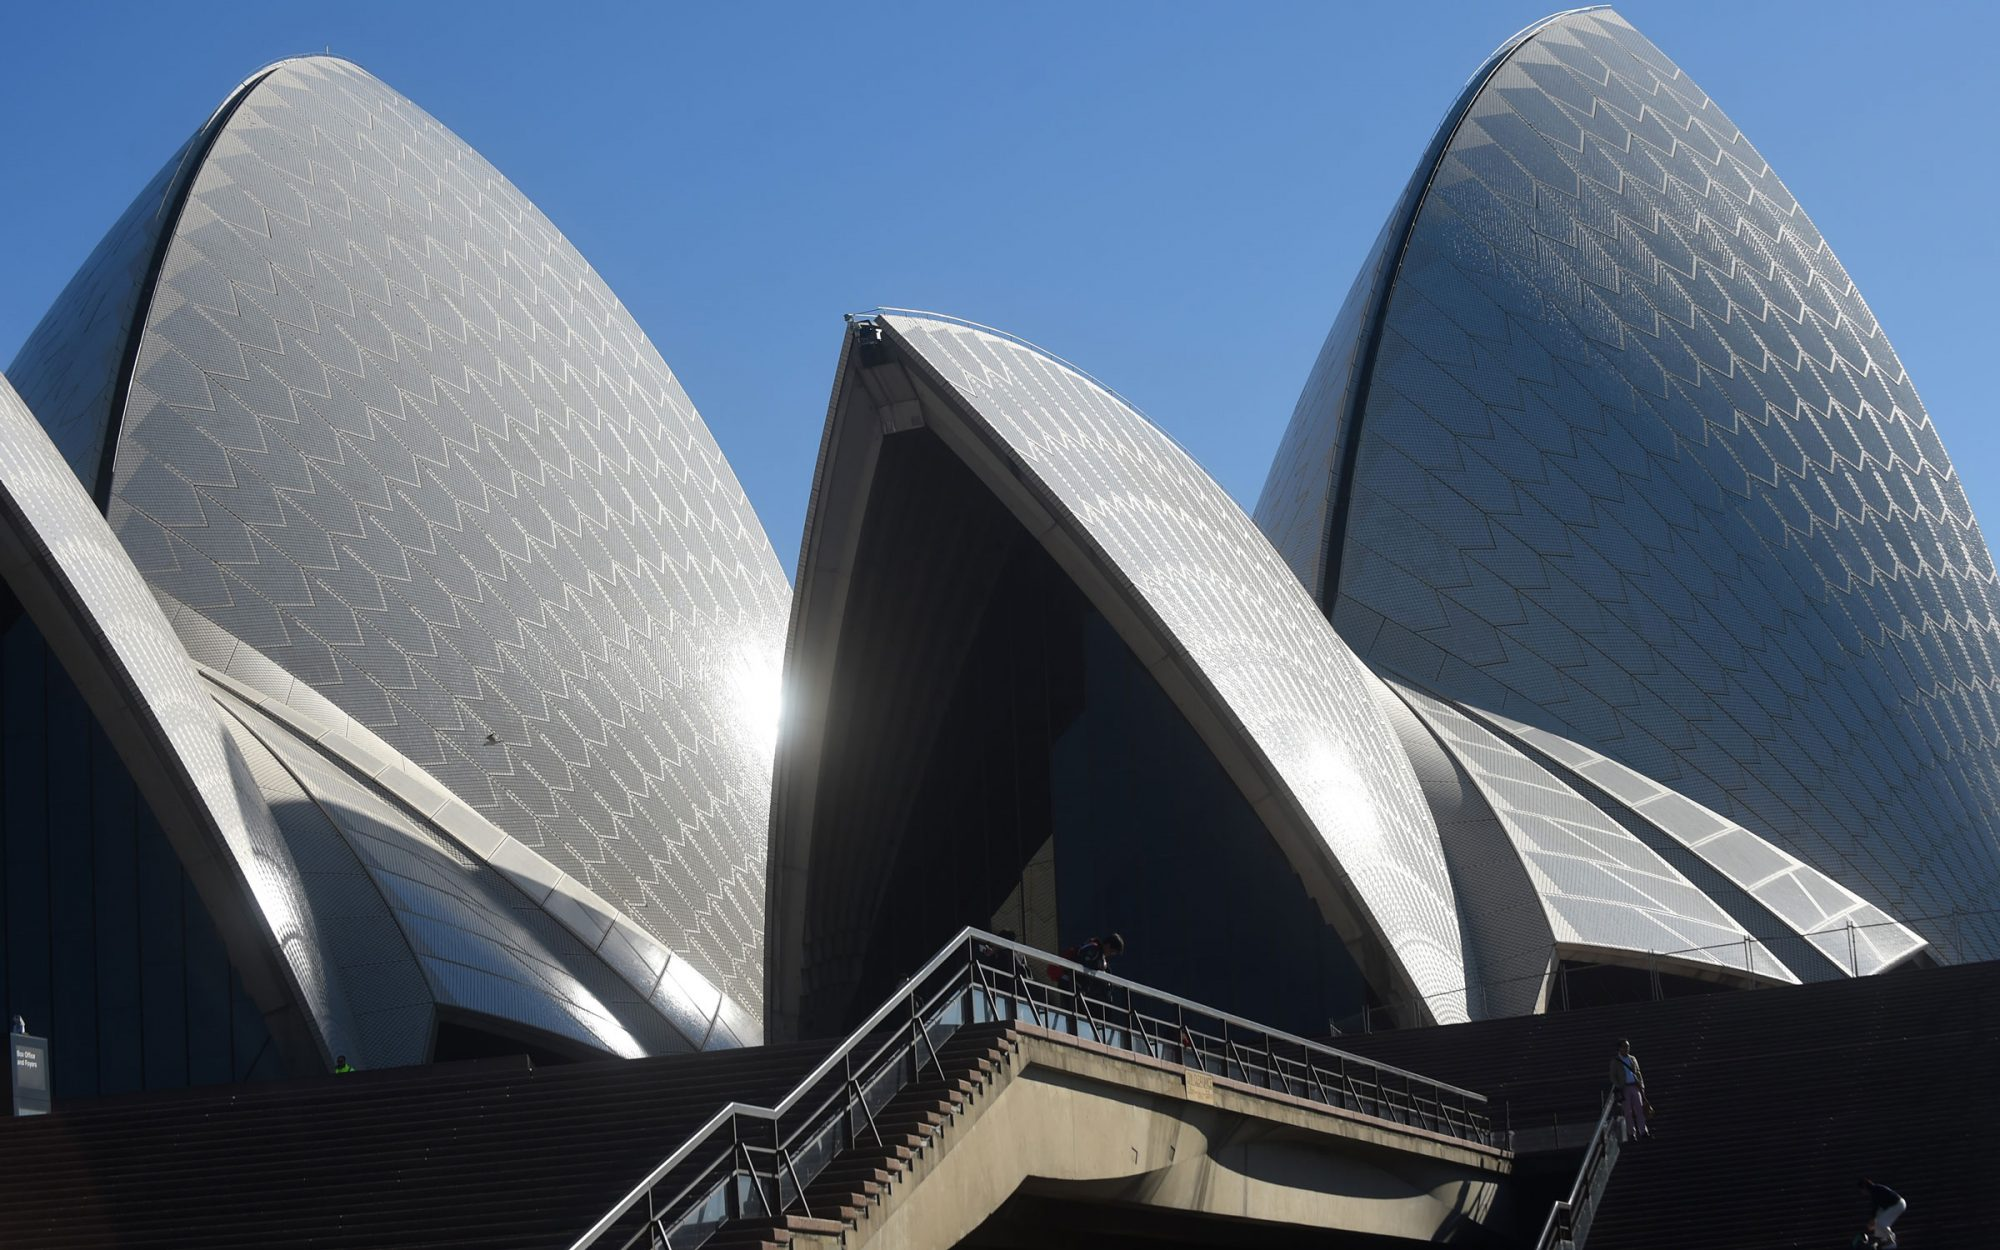 You May Soon Be Able to Spend the Night in the Sydney Opera House